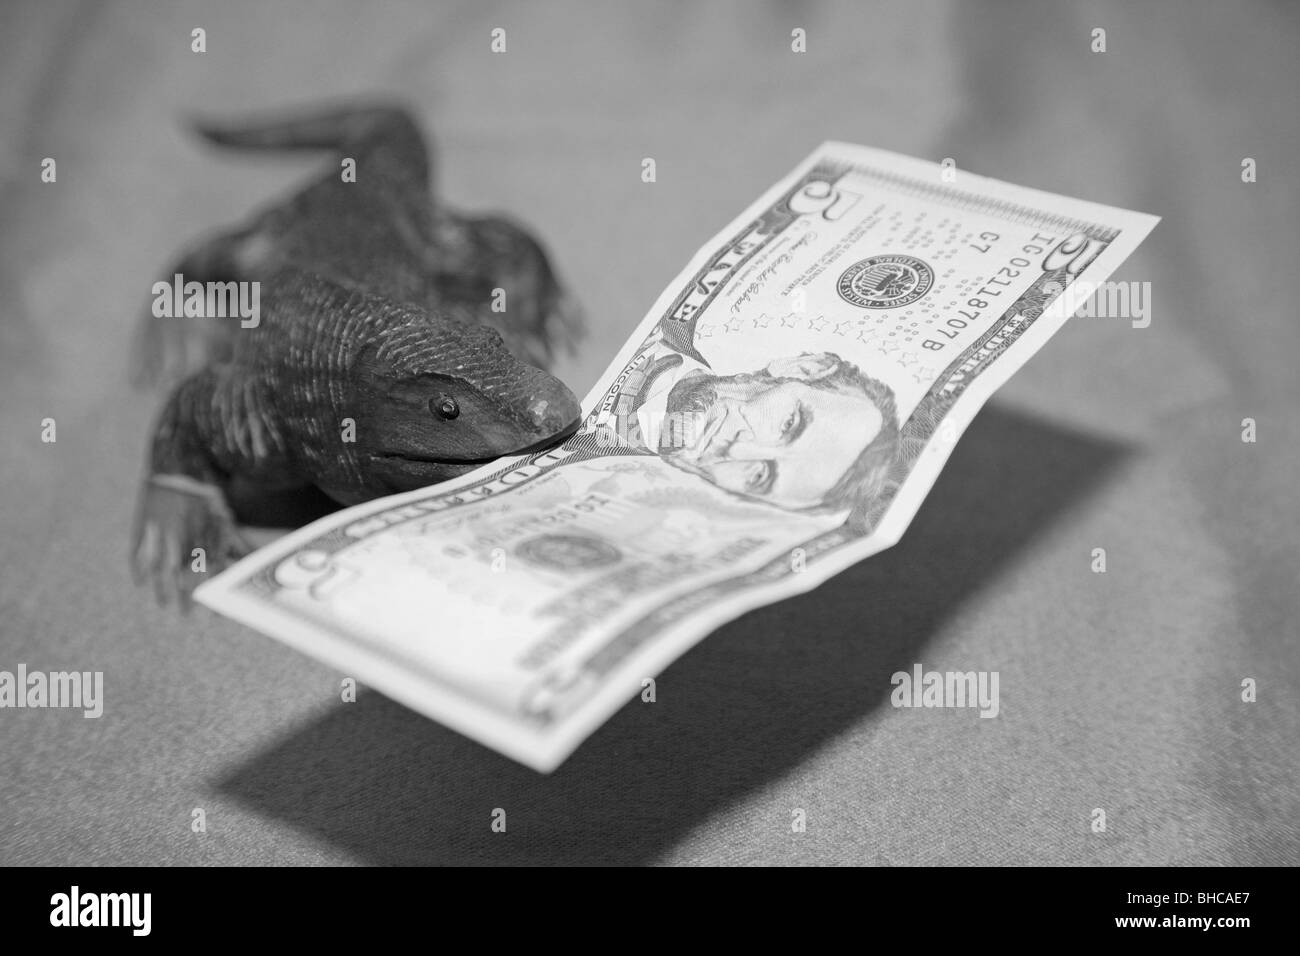 Wooden komodo dragon lizard souvenir carving biting US five dollar bill currency bank note in it's mouth - Stock Image